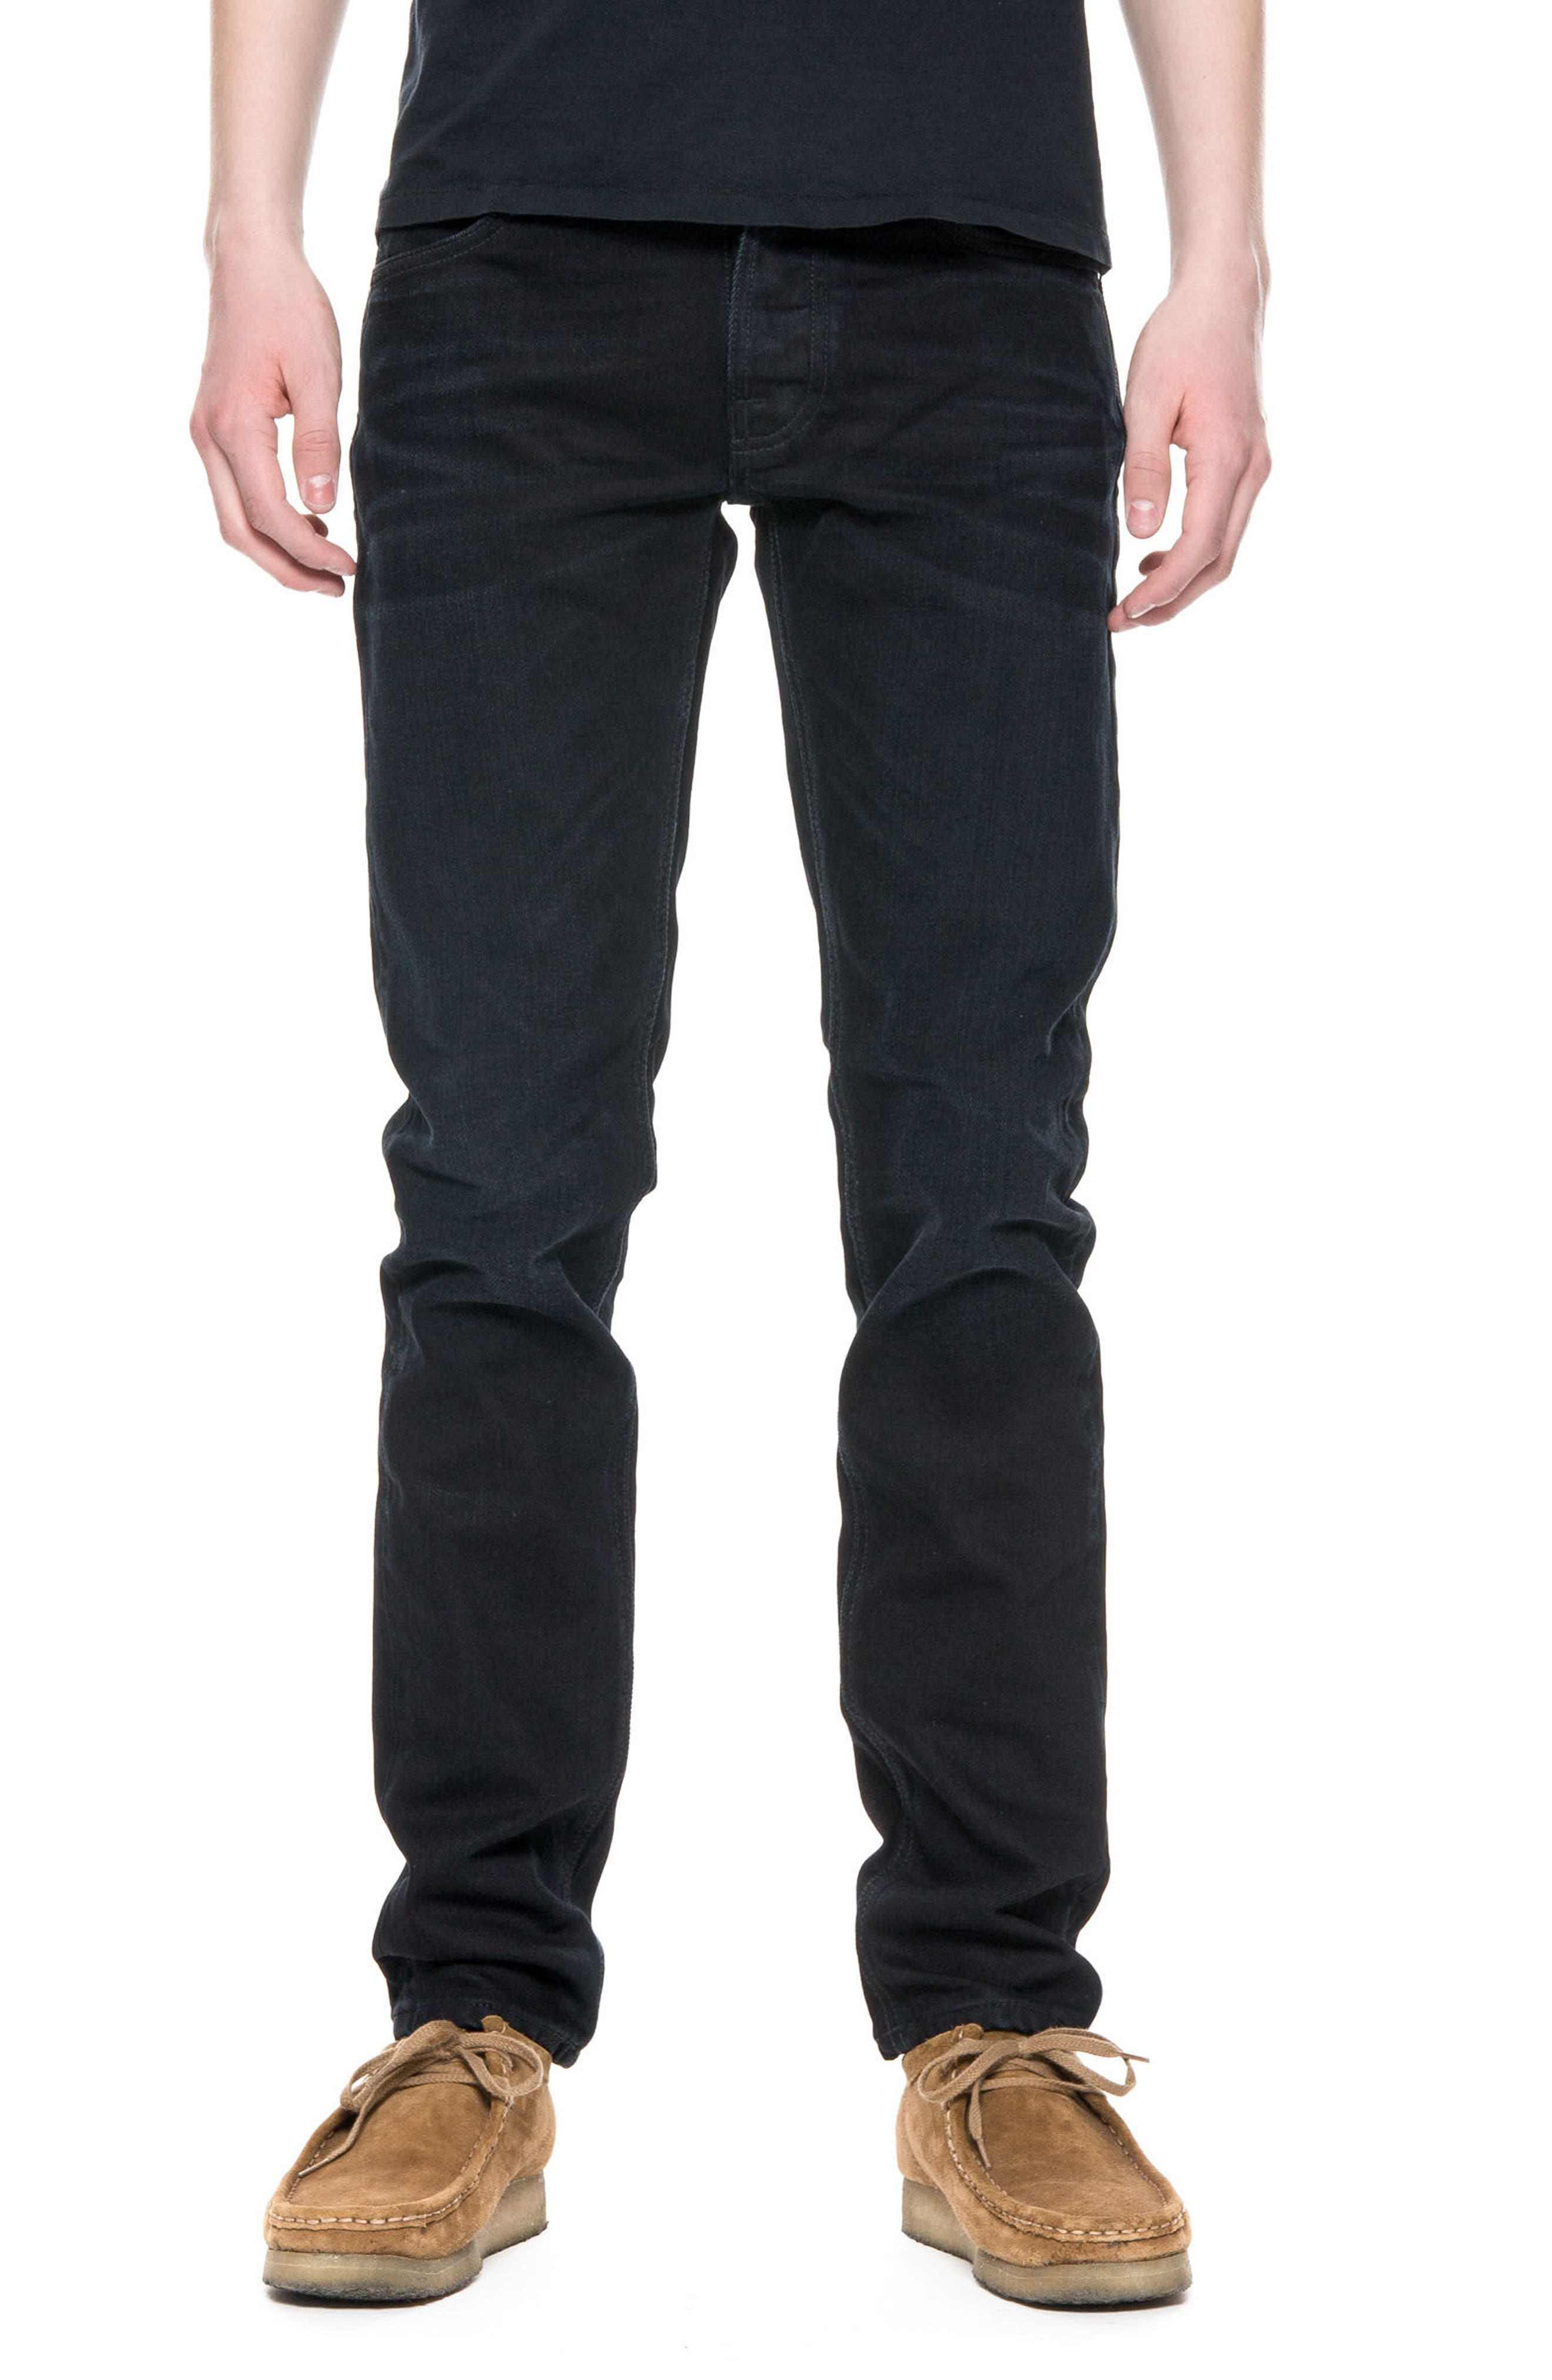 Lean Dean Slouchy Slim Fit Jeans,                             Main thumbnail 1, color,                             001